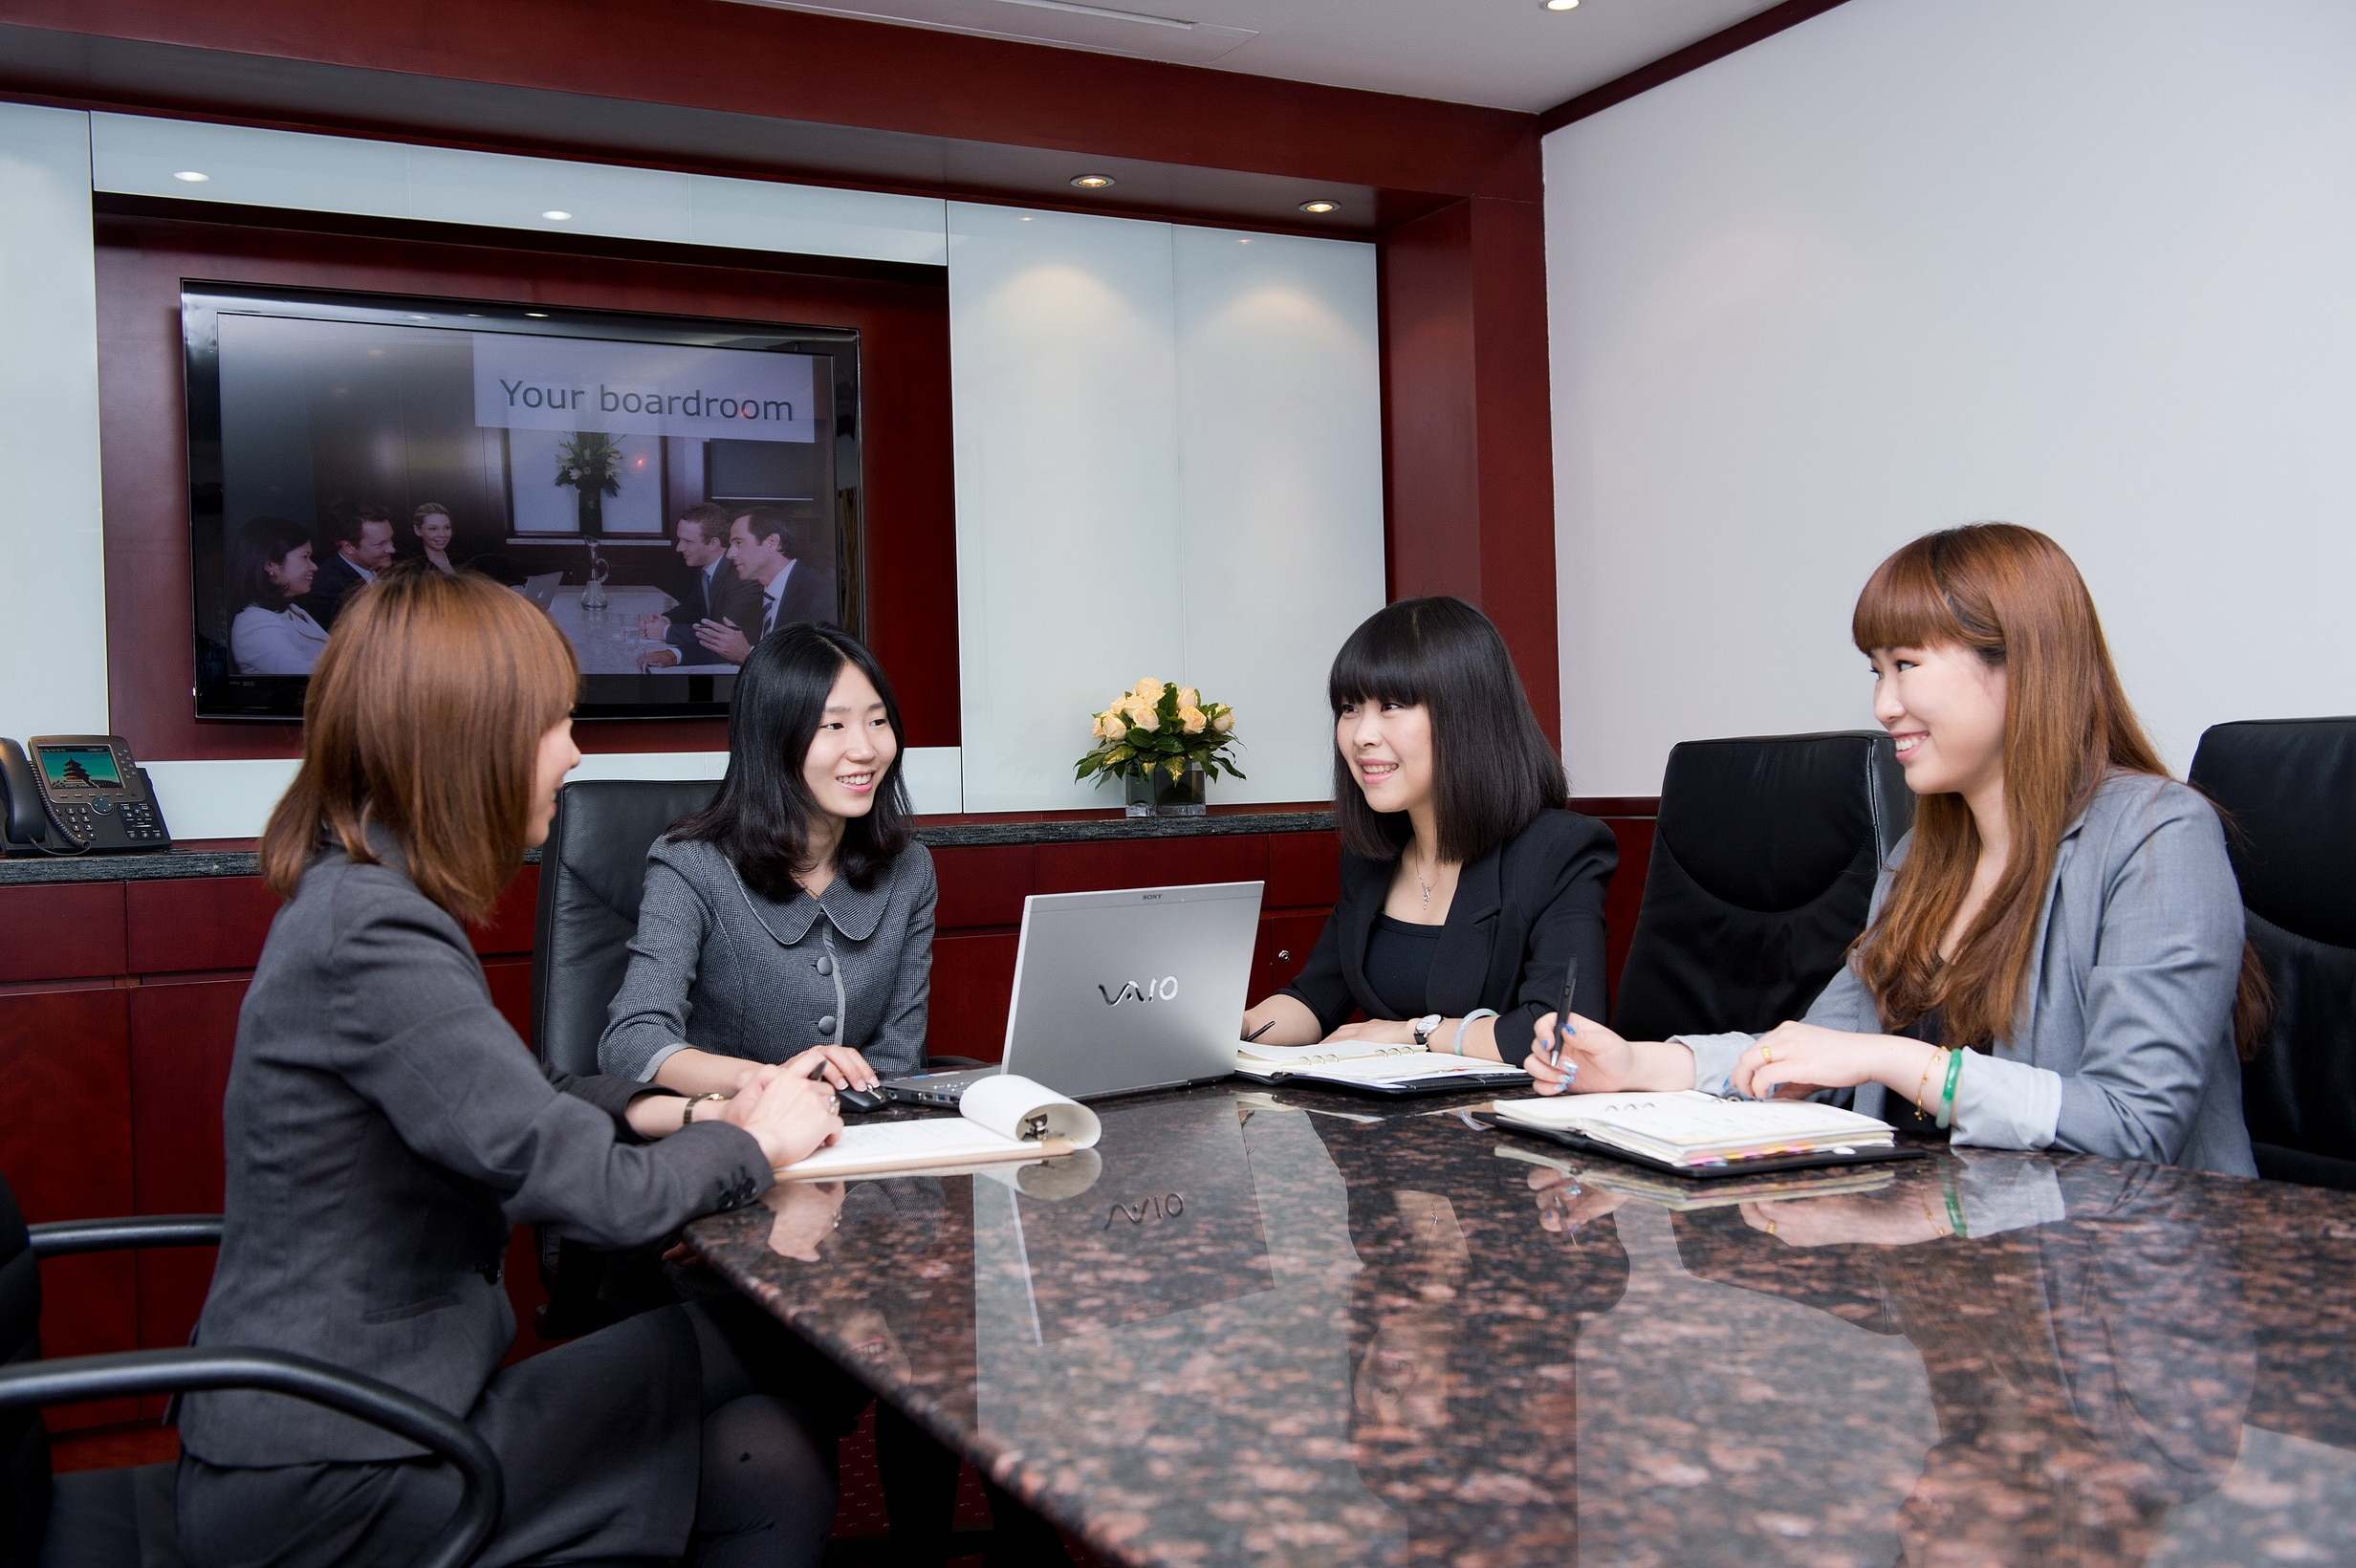 beijing-china-central-place-boardroom-dsc_3428.jpg